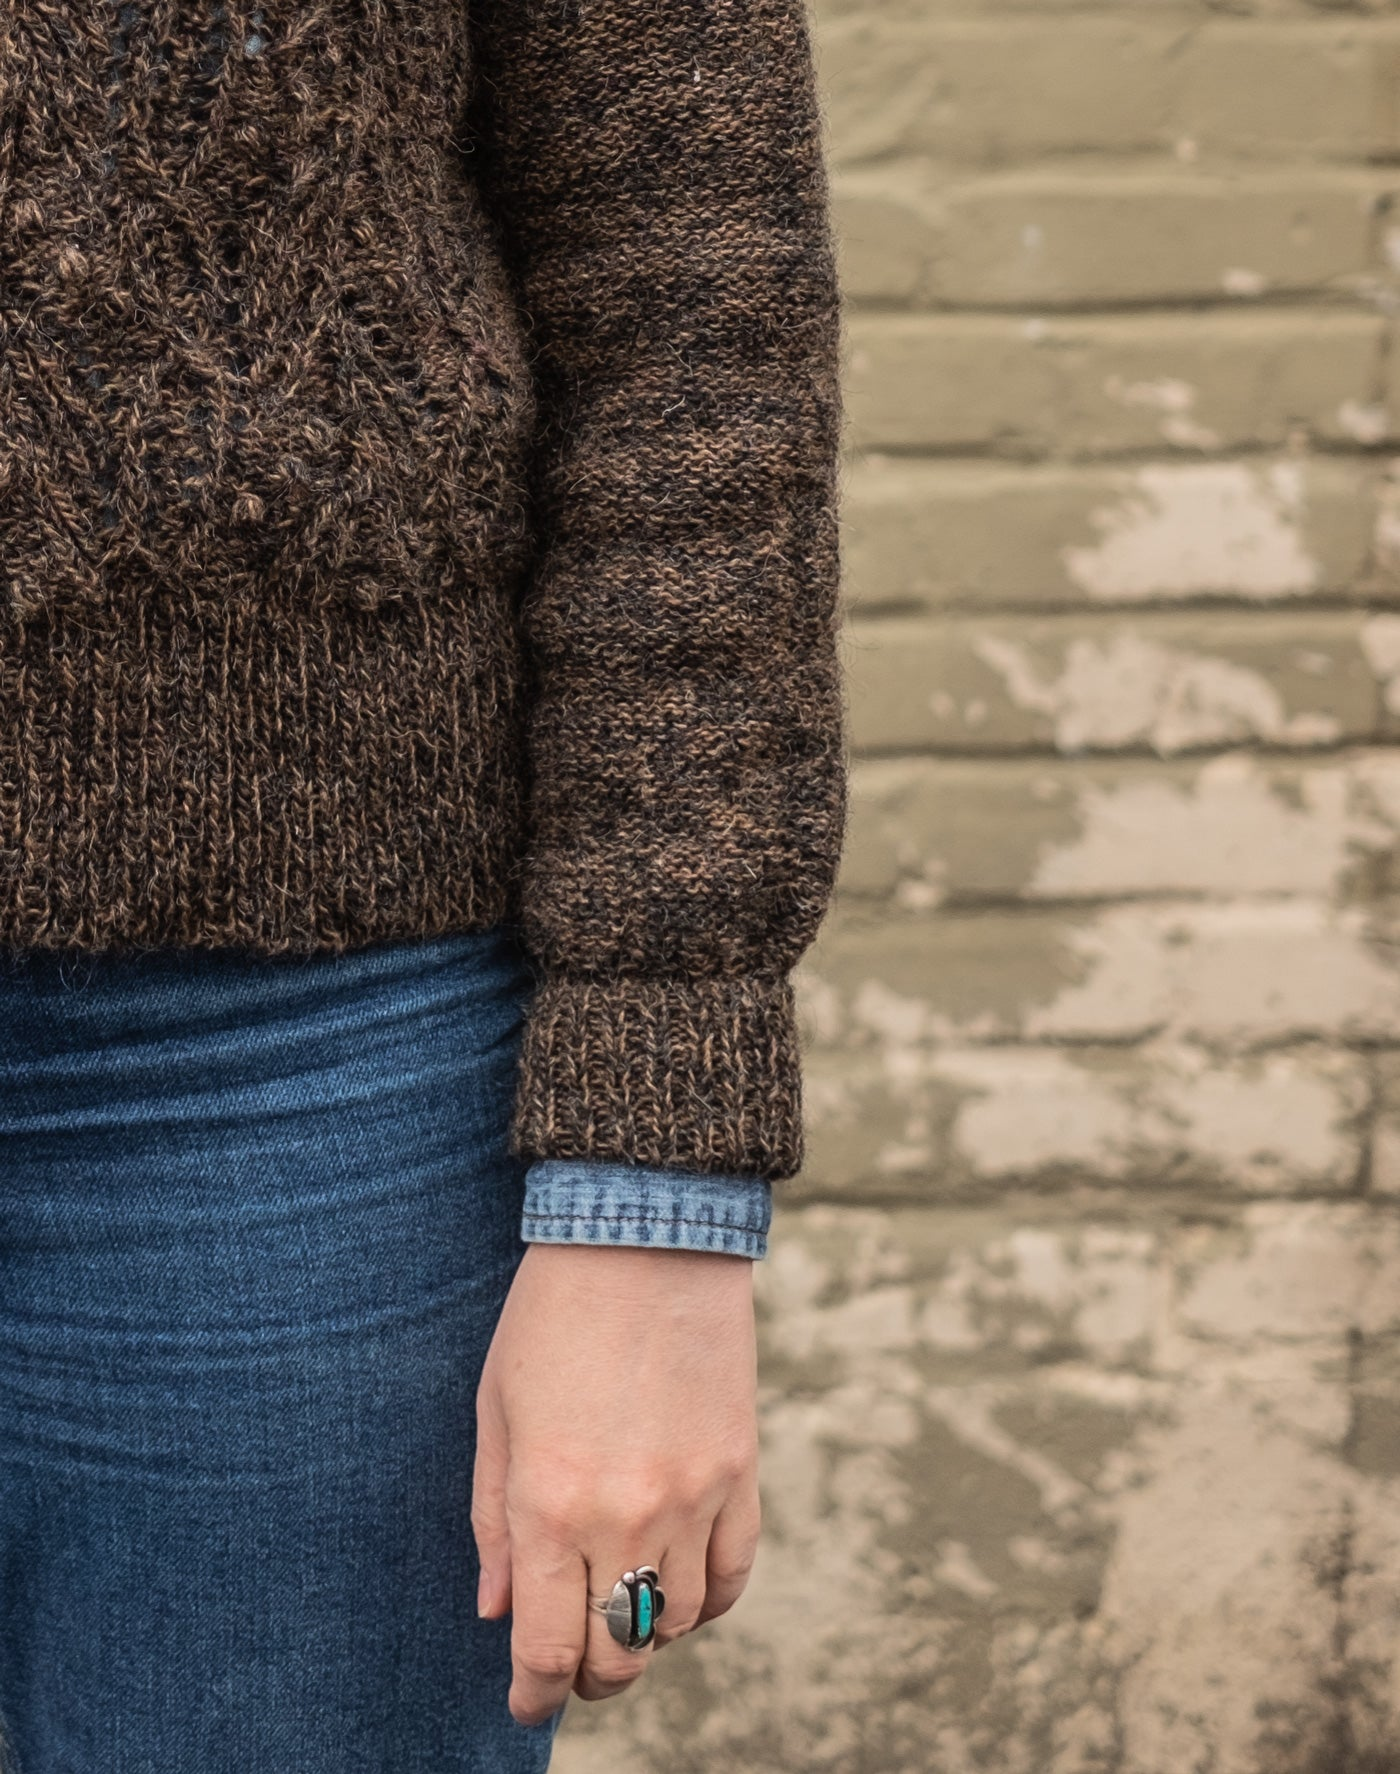 A close up of the bottom hem, sleeve and sleeve cuff of Amber's Atlantica pullover. The cuff is folded up and a bit of her denim button-up sleeve peeks out of the cuff.